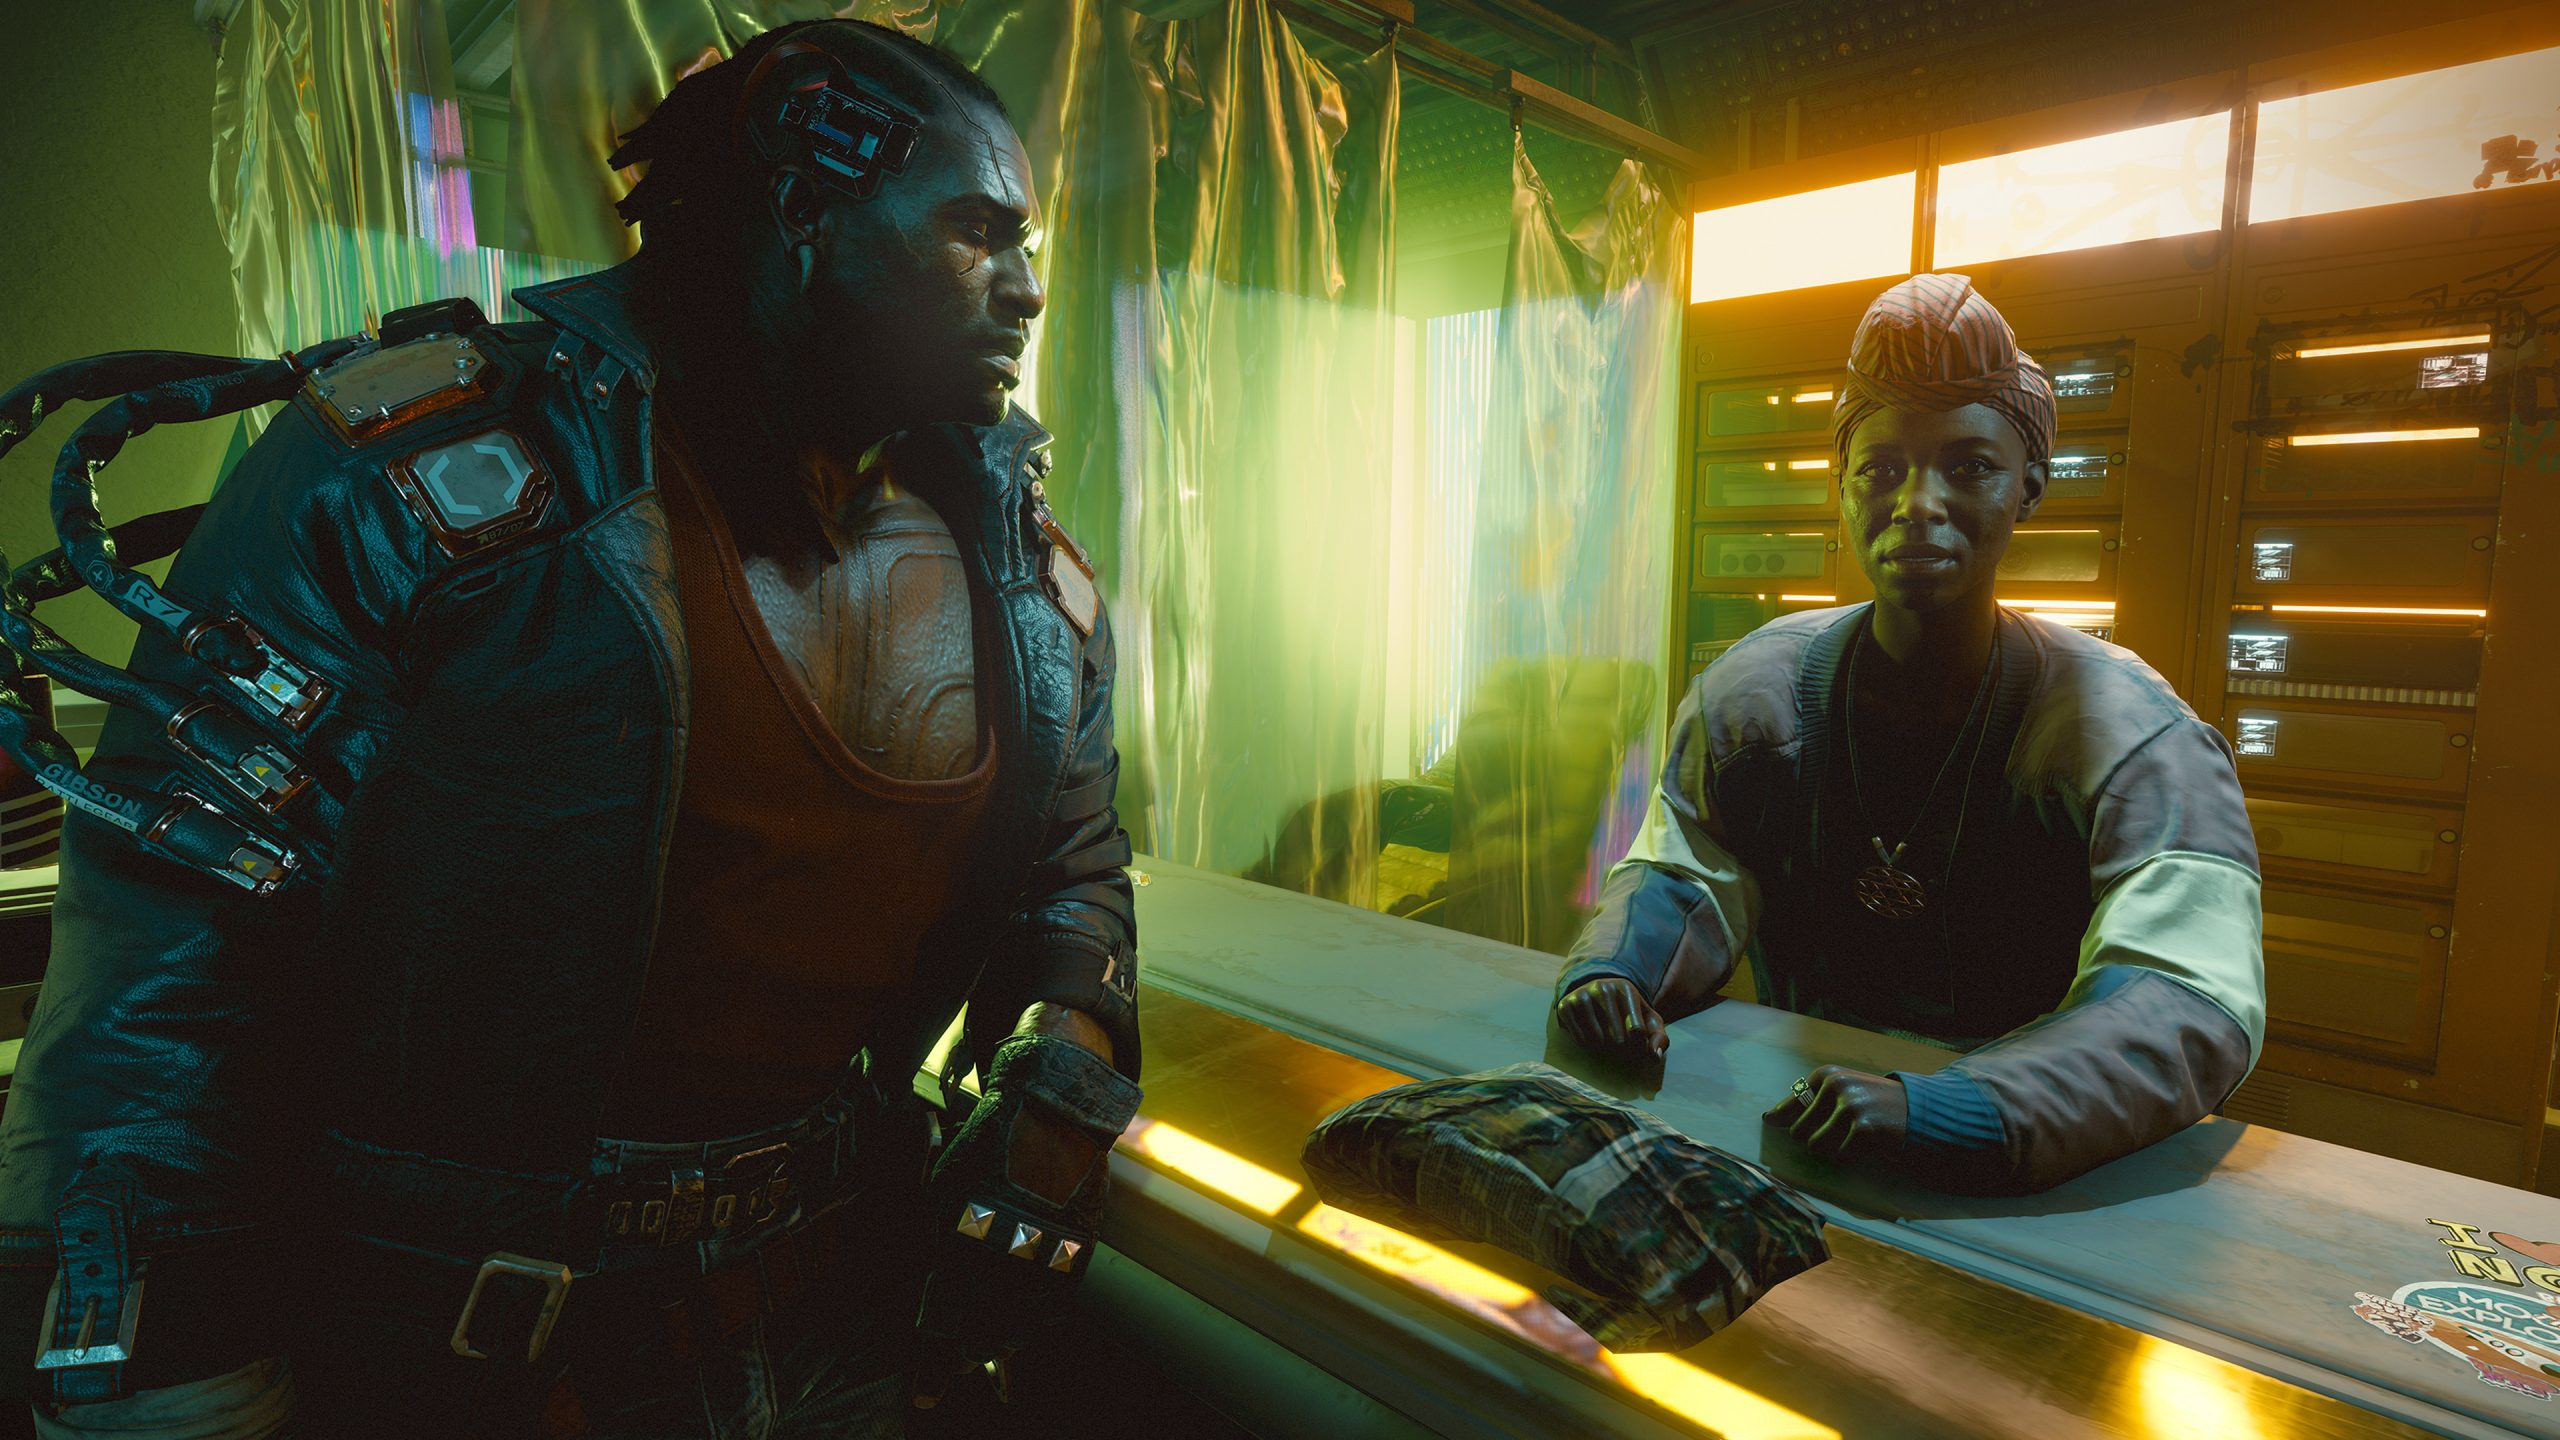 CD Projekt Red desmiente la llegada de Cyberpunk 2077 al Game Pass y aseguran que una demo sería inviable